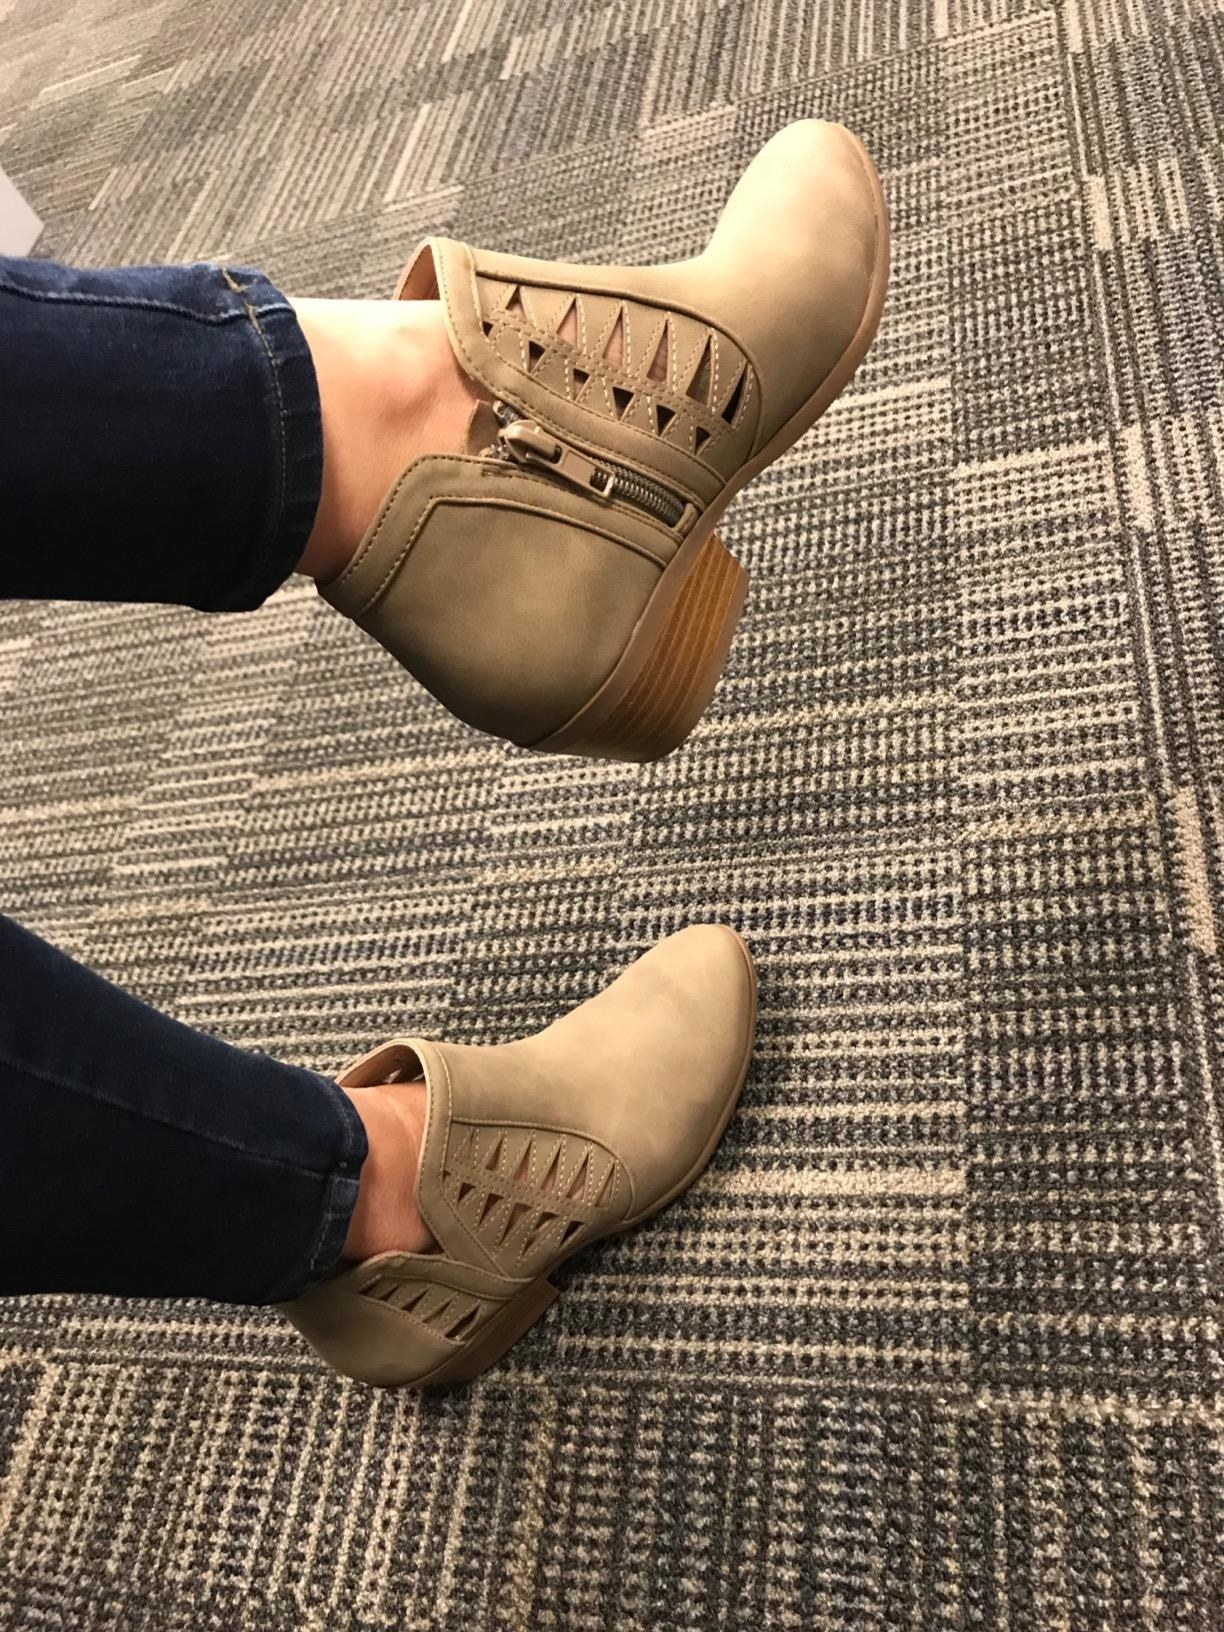 reviewer in tan booties with cut-out detailing on the sides